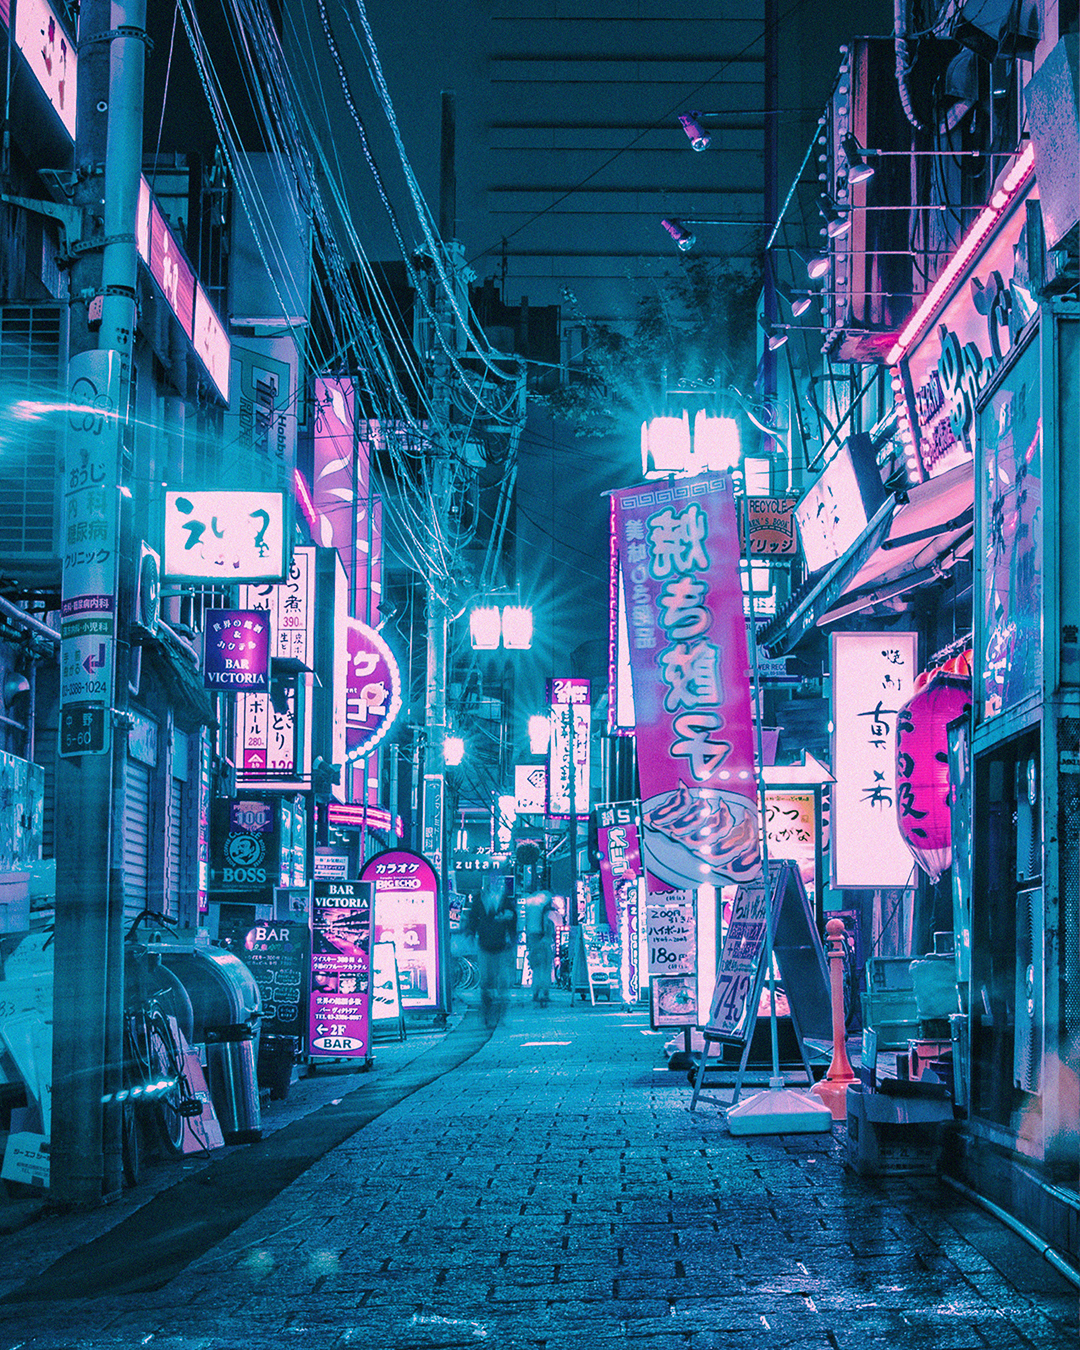 We're bringing back the 80s and serving up some neon-noir with our Cyber Effects 💟 #cyber #cyberpunk #cybereffects #cyberedit #throwback #neon #freetoedi